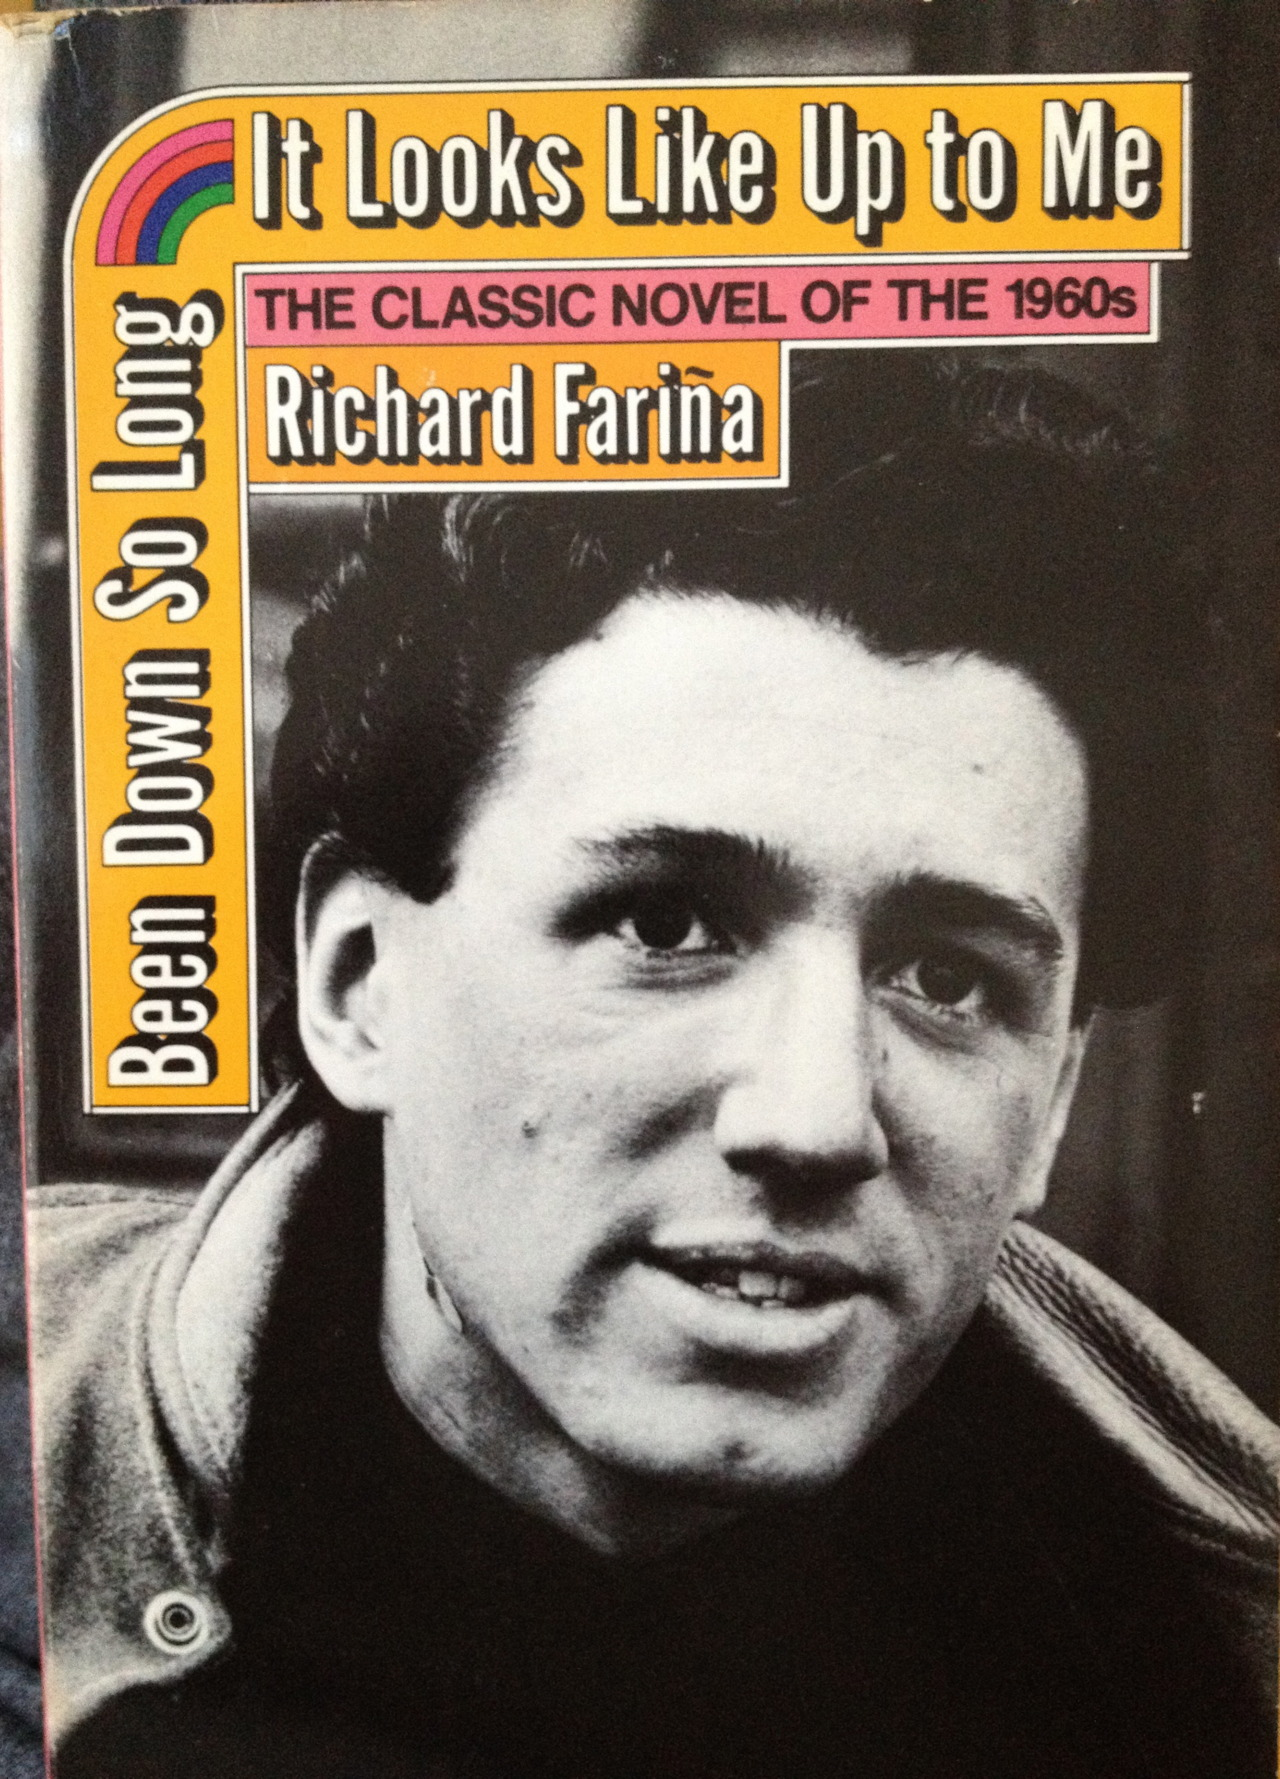 This cult novel by  Richard Fariña , classmate of Thomas Pynchon, Kirkpatrick Sale and others, includes some scenes inspired by events on the Cornell campus in the 1950s. I bought this weather-beaten copy in college when some friends became obsessed with  Fariña, who  died at 29 in a motorcycle accident shortly after its publication in 1966. The style is lyrical stream of consciousness in places: